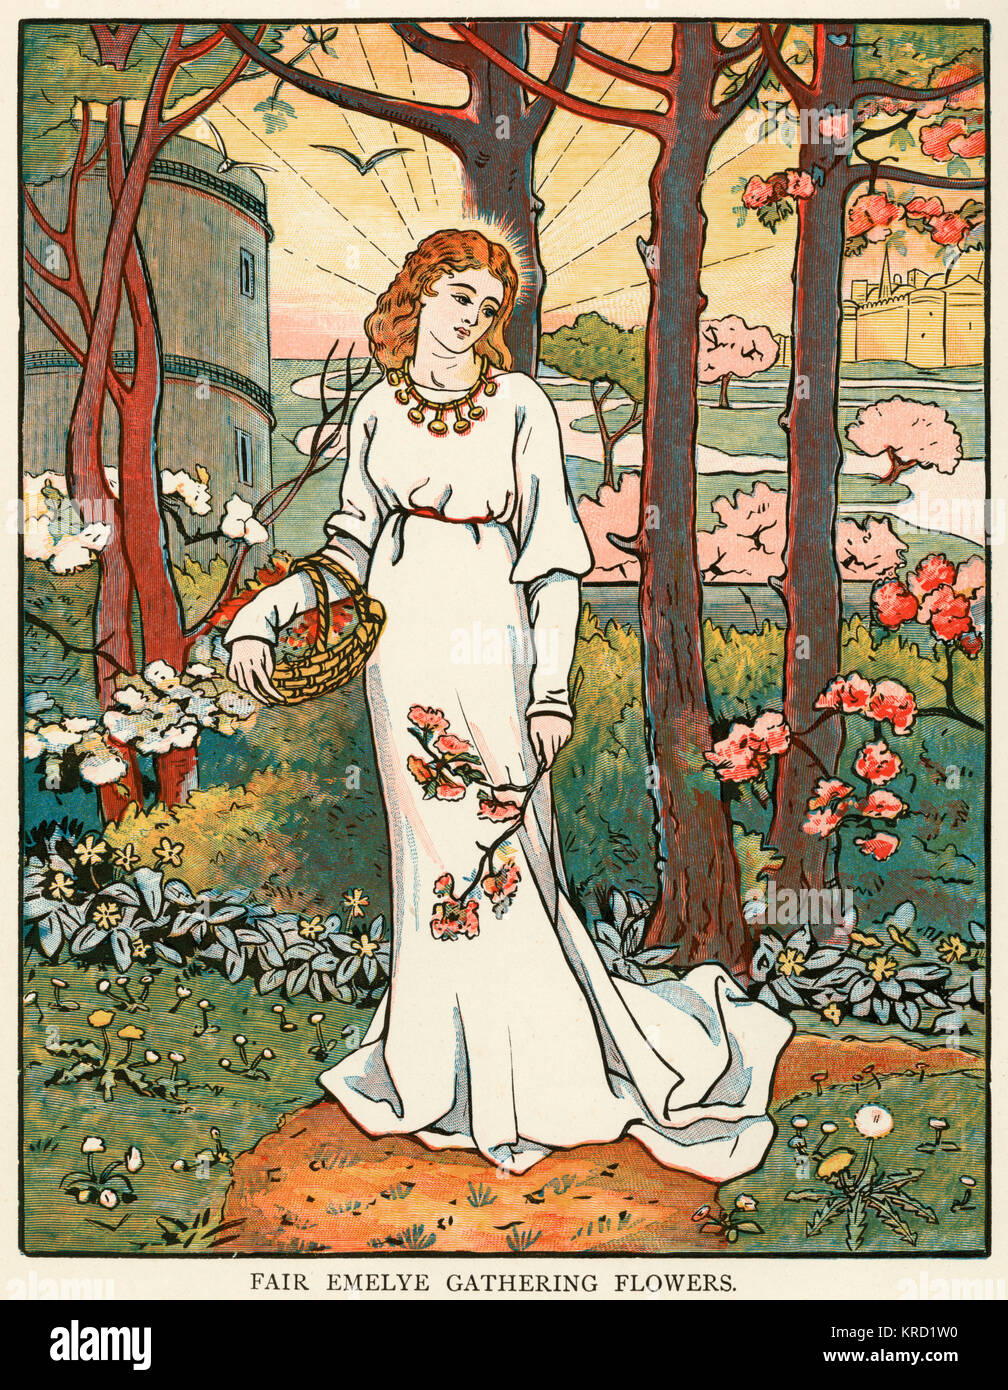 Canterbury Tales: The Knight's Tale.  Emelye gathering flowers     Date: First published: circa 1387 - Stock Image